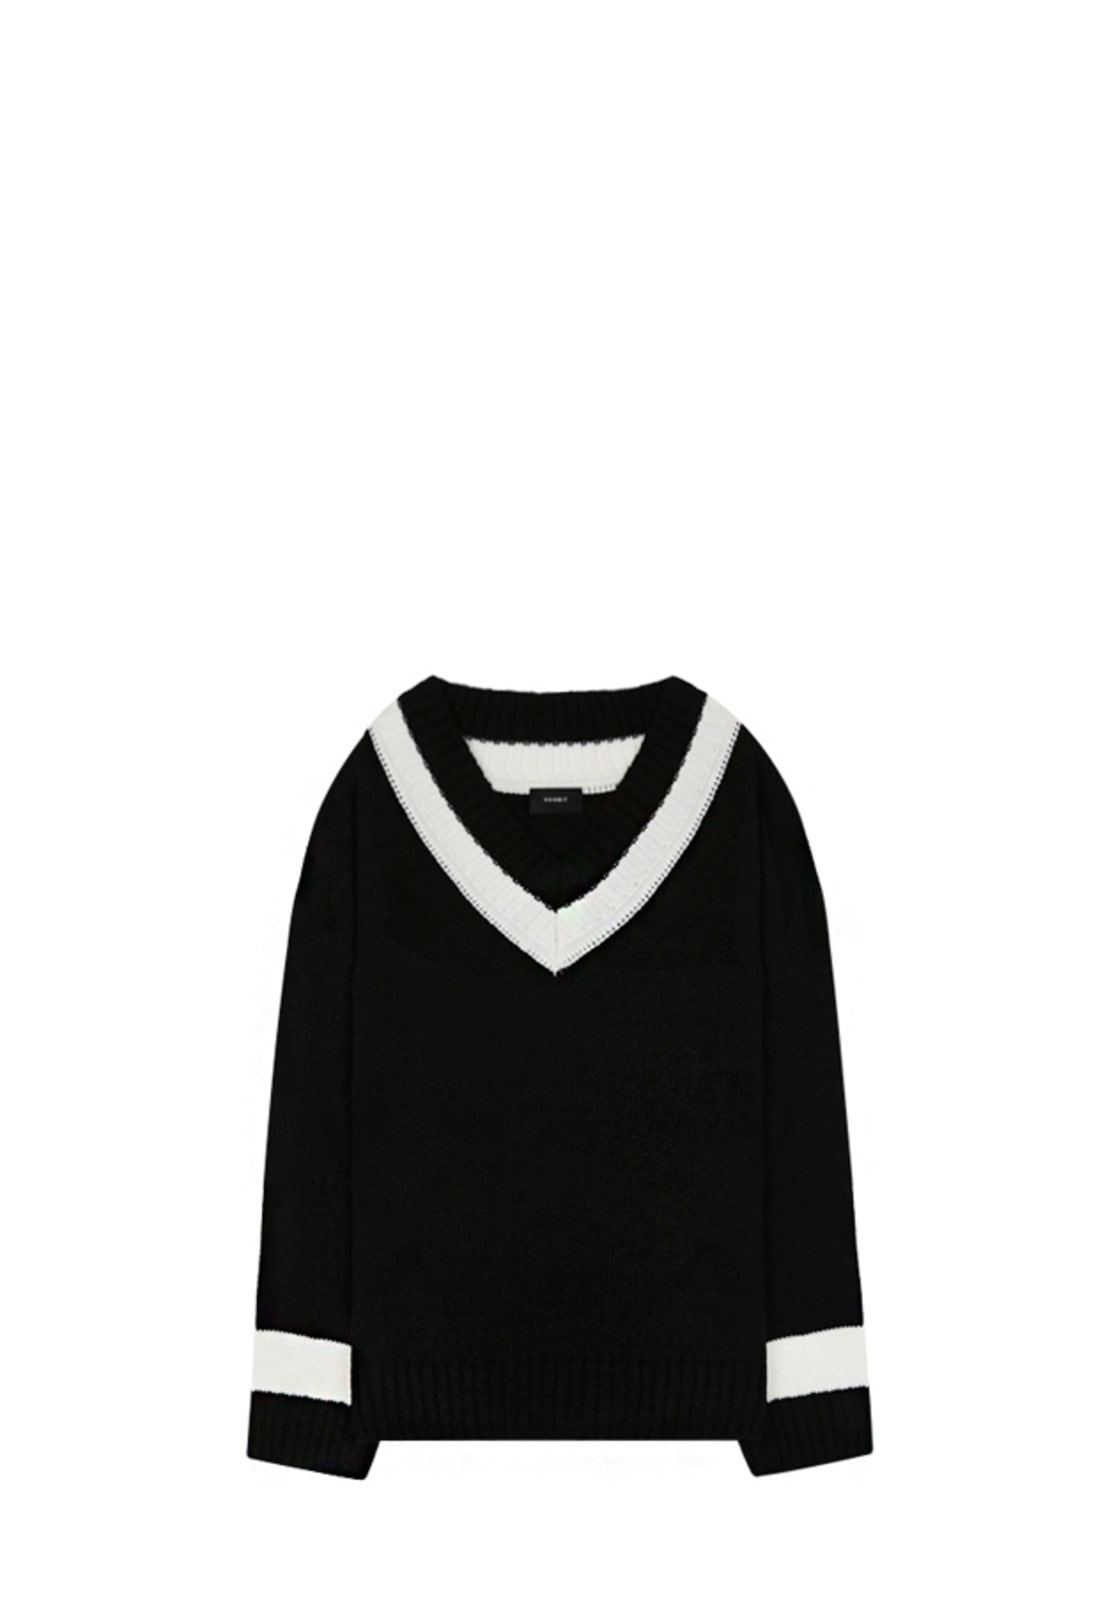 V531 DOUBLE V-NECK KNIT BLACK